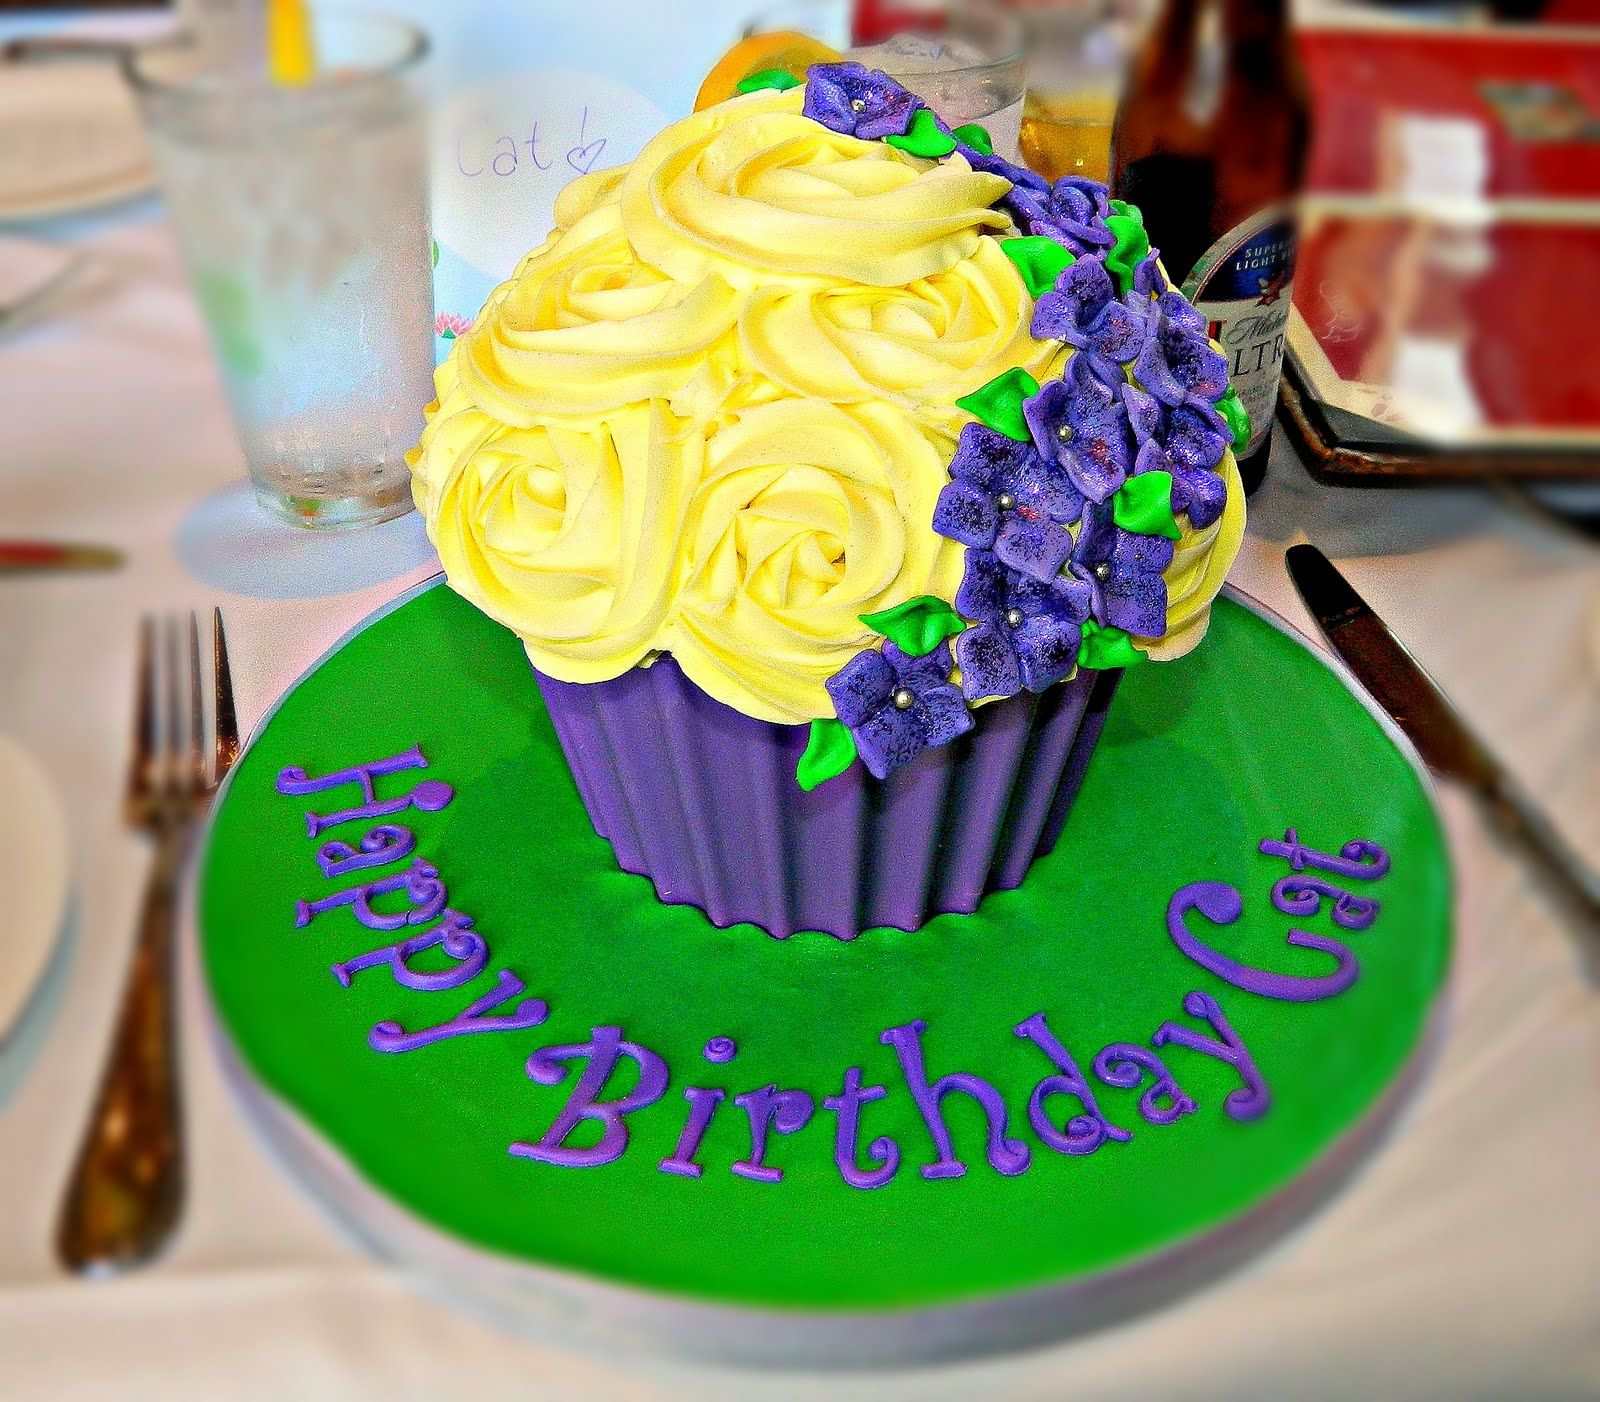 Giant Cupcake - Elegant Giant cupcake featuring the birthday girl's favorite colors.